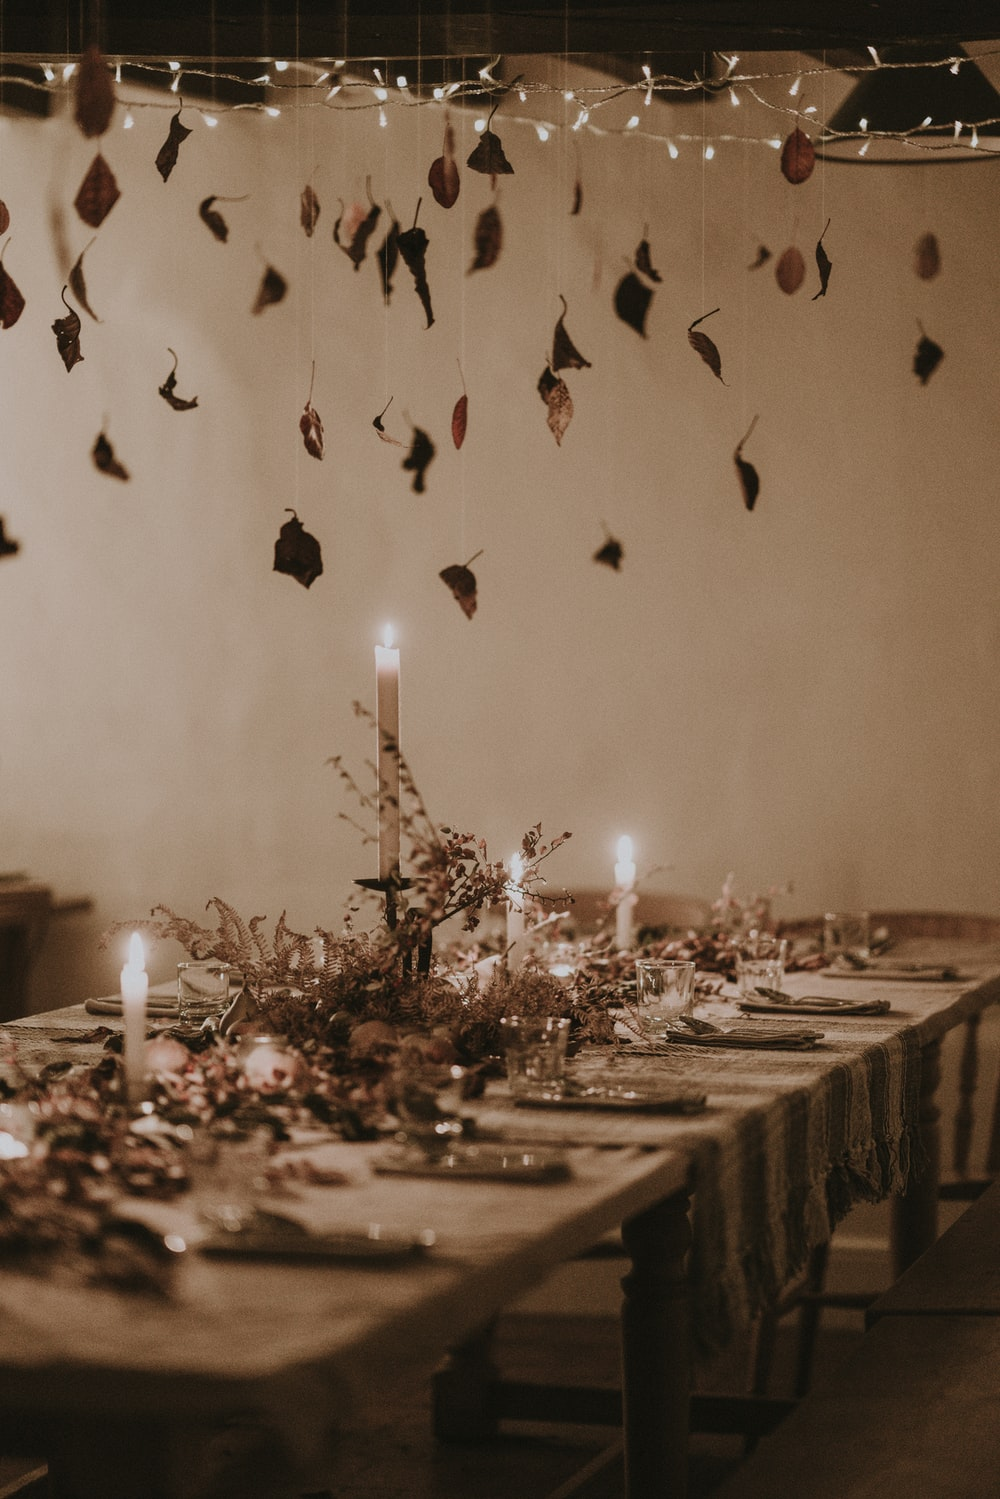 empty table and chairs with candles